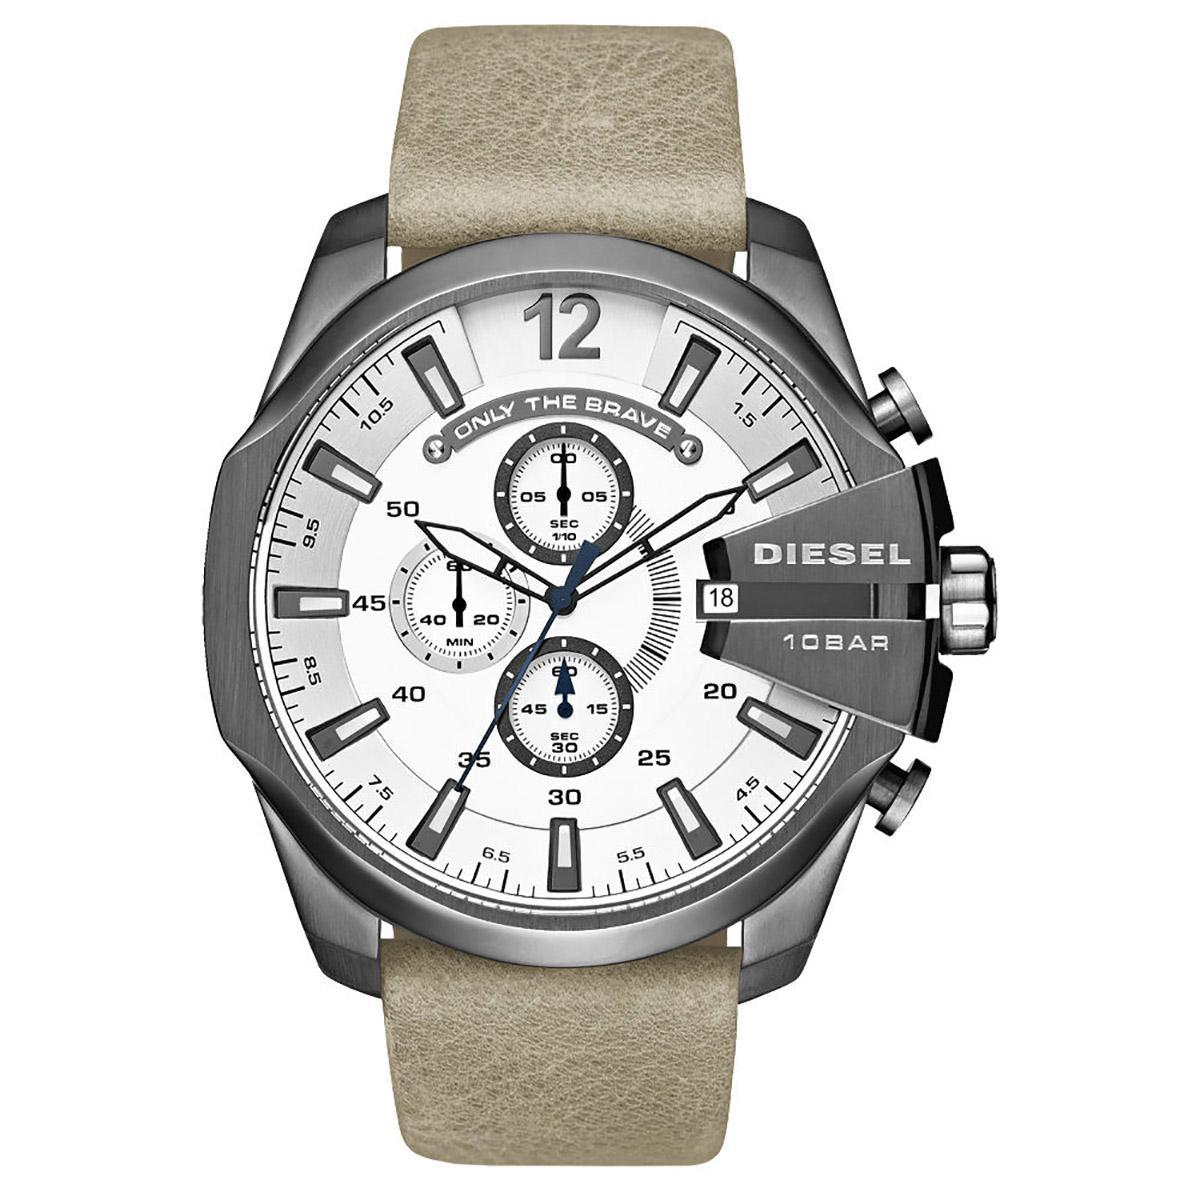 ยี่ห้อไหนดี  อุบลราชธานี Authentic Diesel Beige Stainless-Steel Case Leather Strap Mens DZ4359 2 Years Warranty